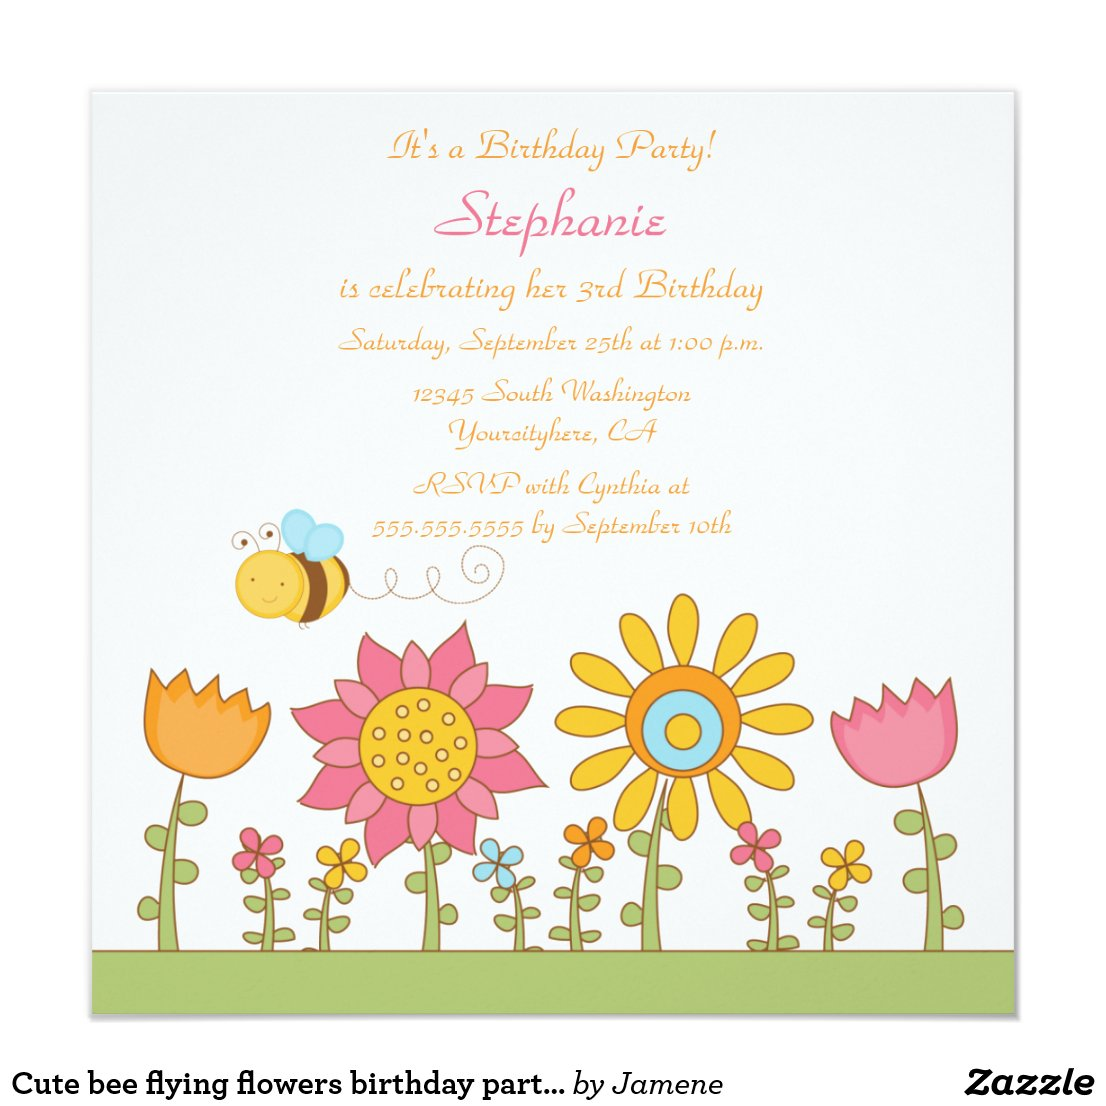 Cute bee flying flowers birthday party invitation